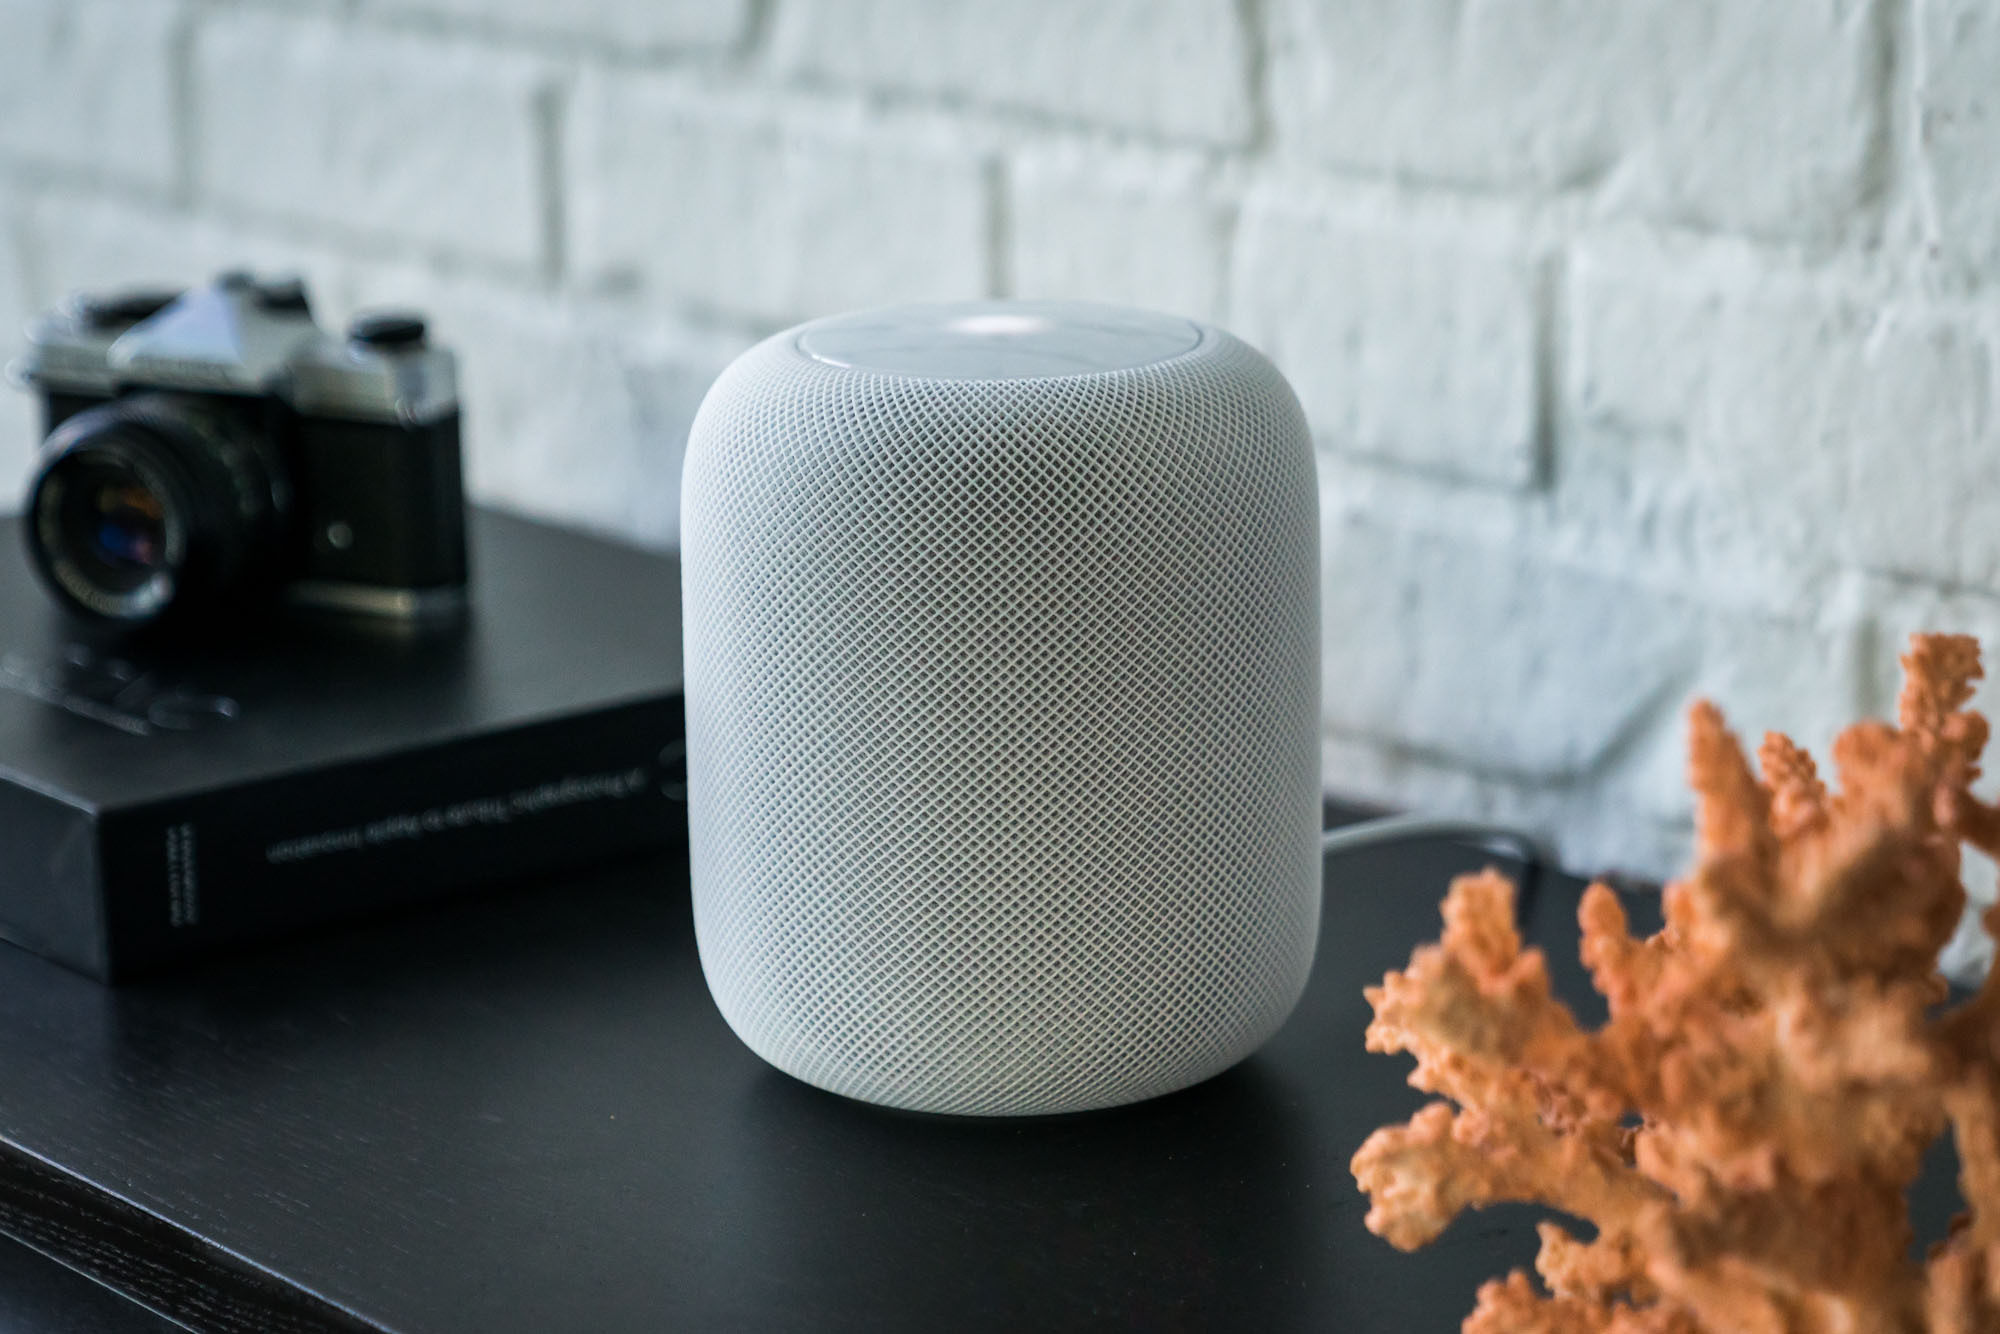 Apple has started selling the HomePod in two countries